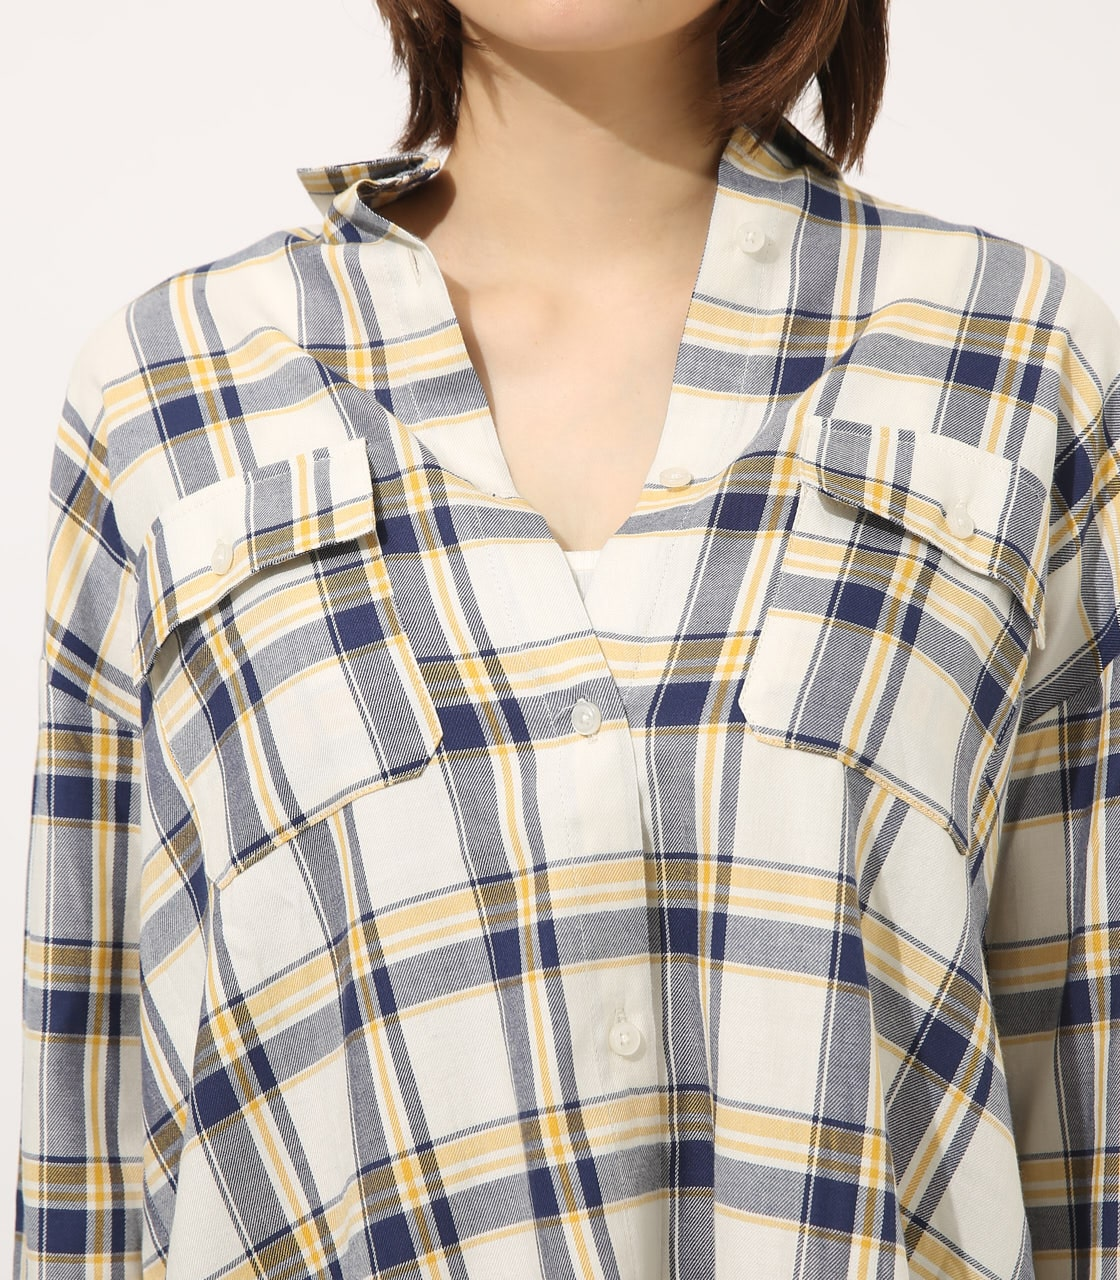 【AZUL BY MOUSSY】MADRAS CHECK SHIRT【MOOK50掲載 90135】 詳細画像 柄WHT 7